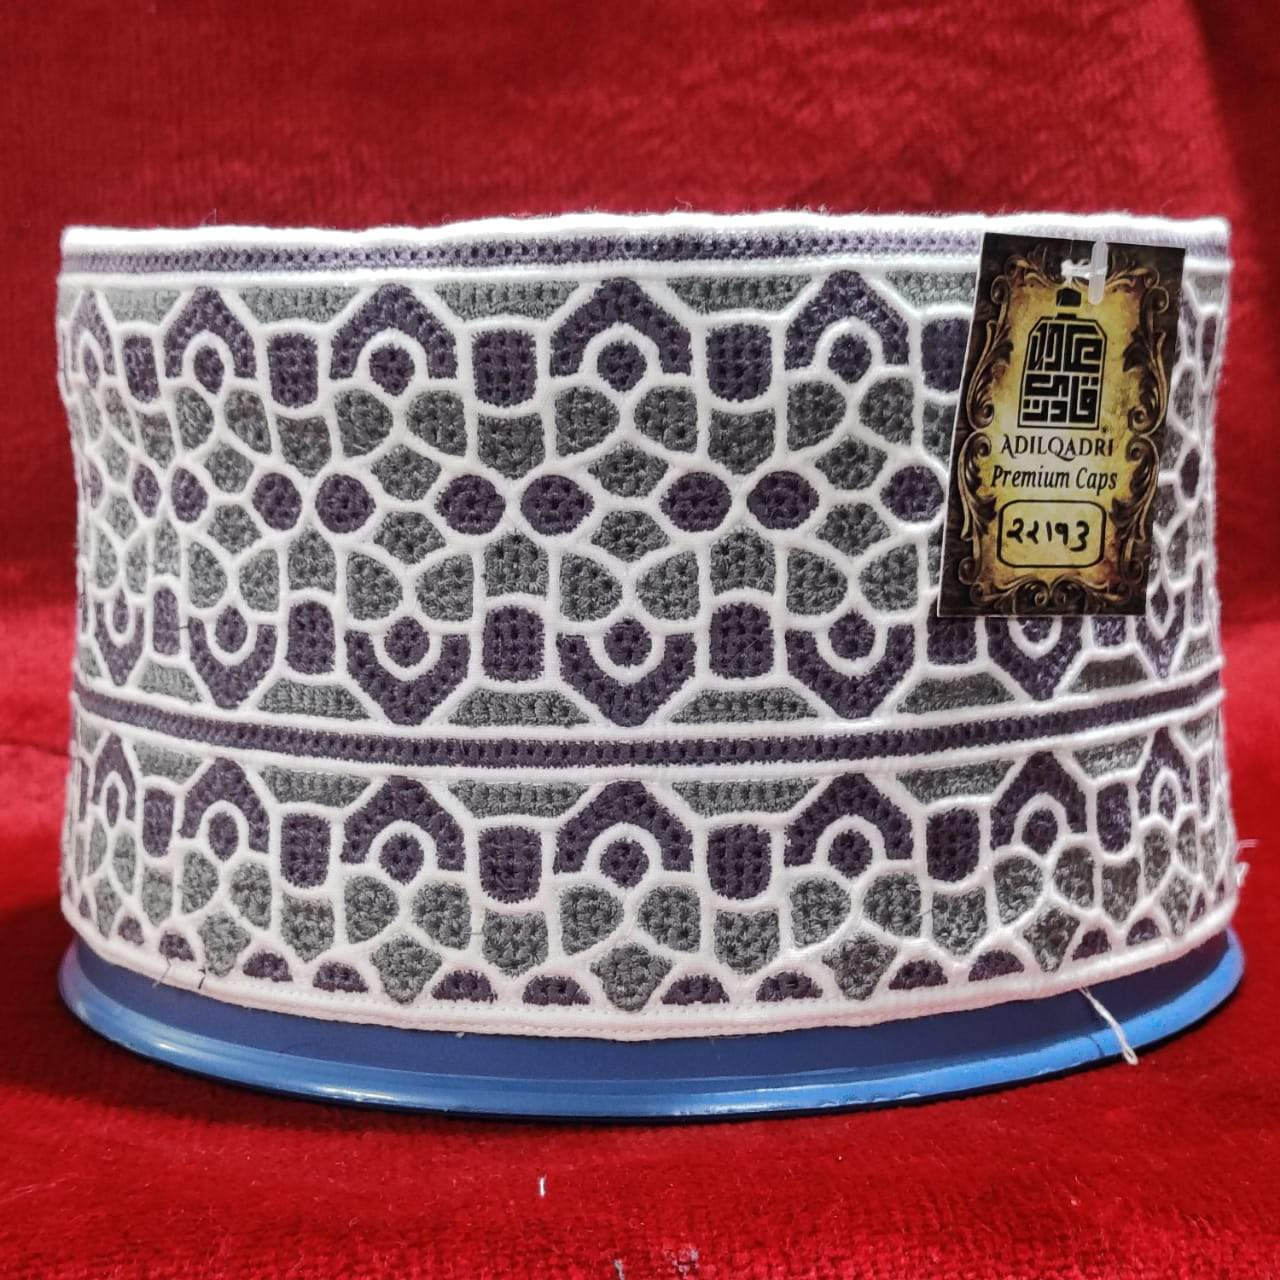 Adilqadri New Original Omani Barkati Cap Soft Cotton Material Model No 22193 Size 22 (Barkati Topi)